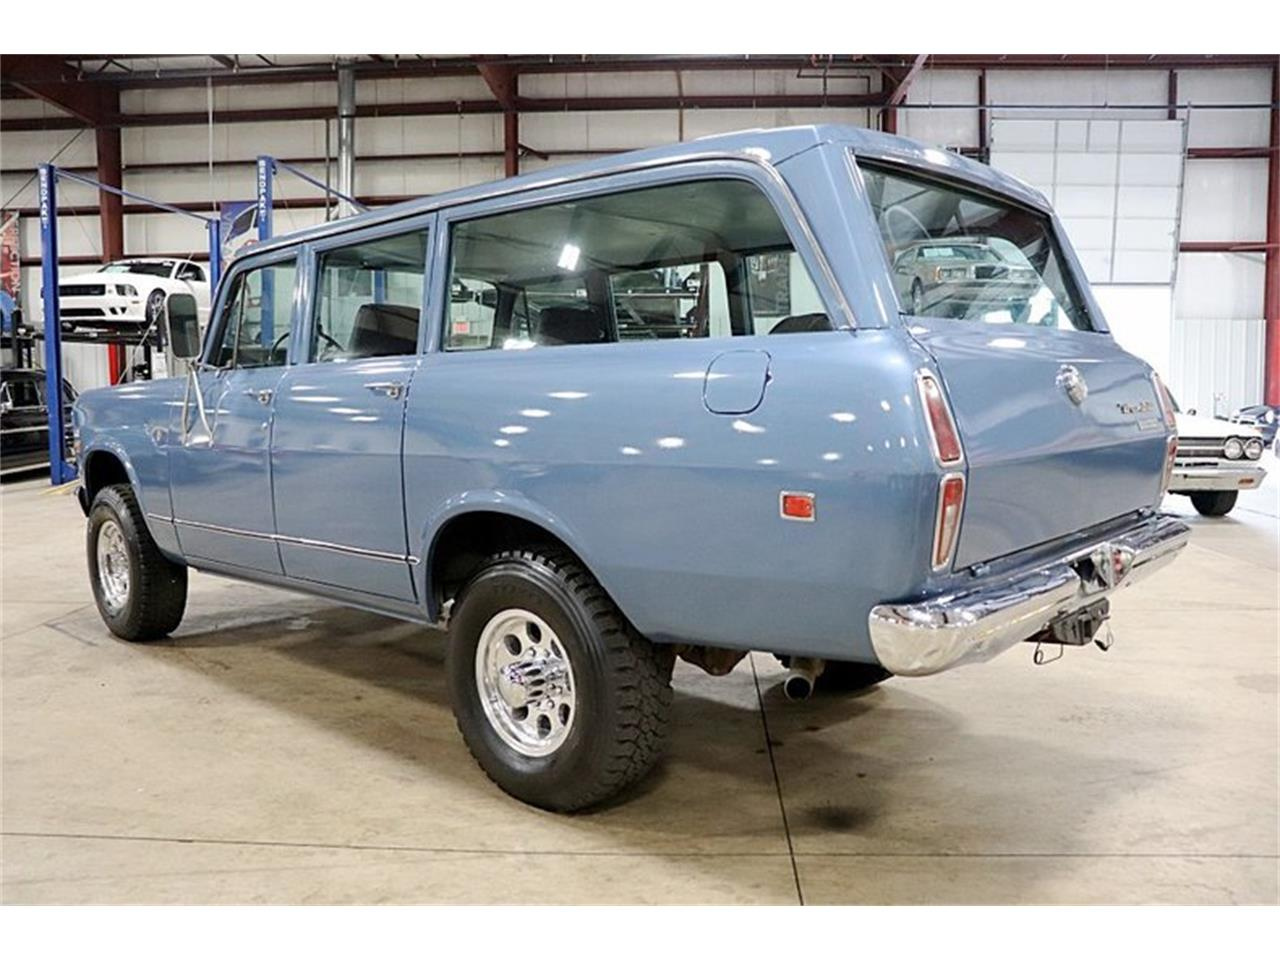 Large Picture of Classic 1973 International Harvester located in Kentwood Michigan - $19,900.00 Offered by GR Auto Gallery - Q50E